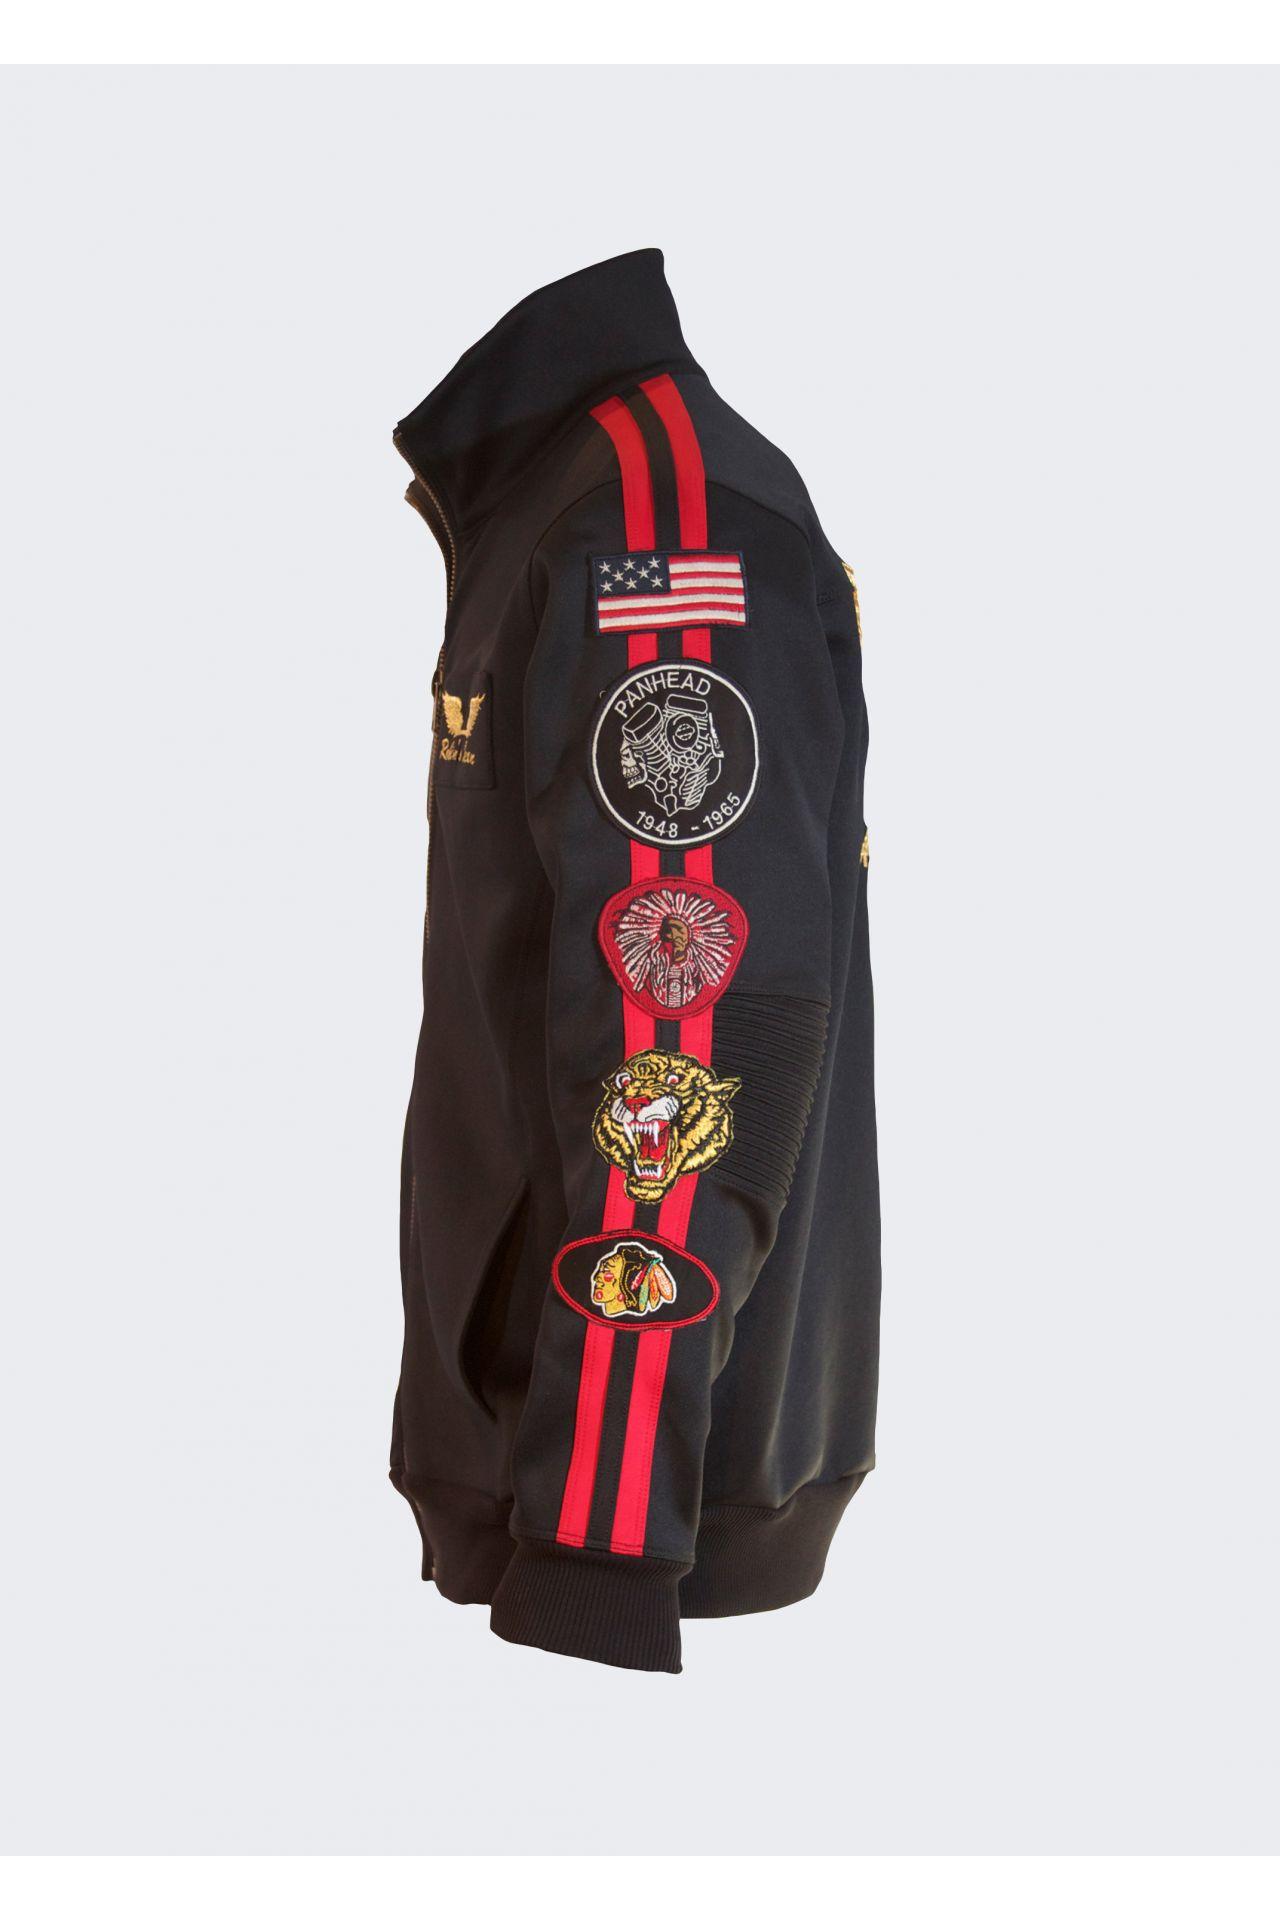 TRACK JACKET WITH STRIPES AND PATCHES IN BLACK